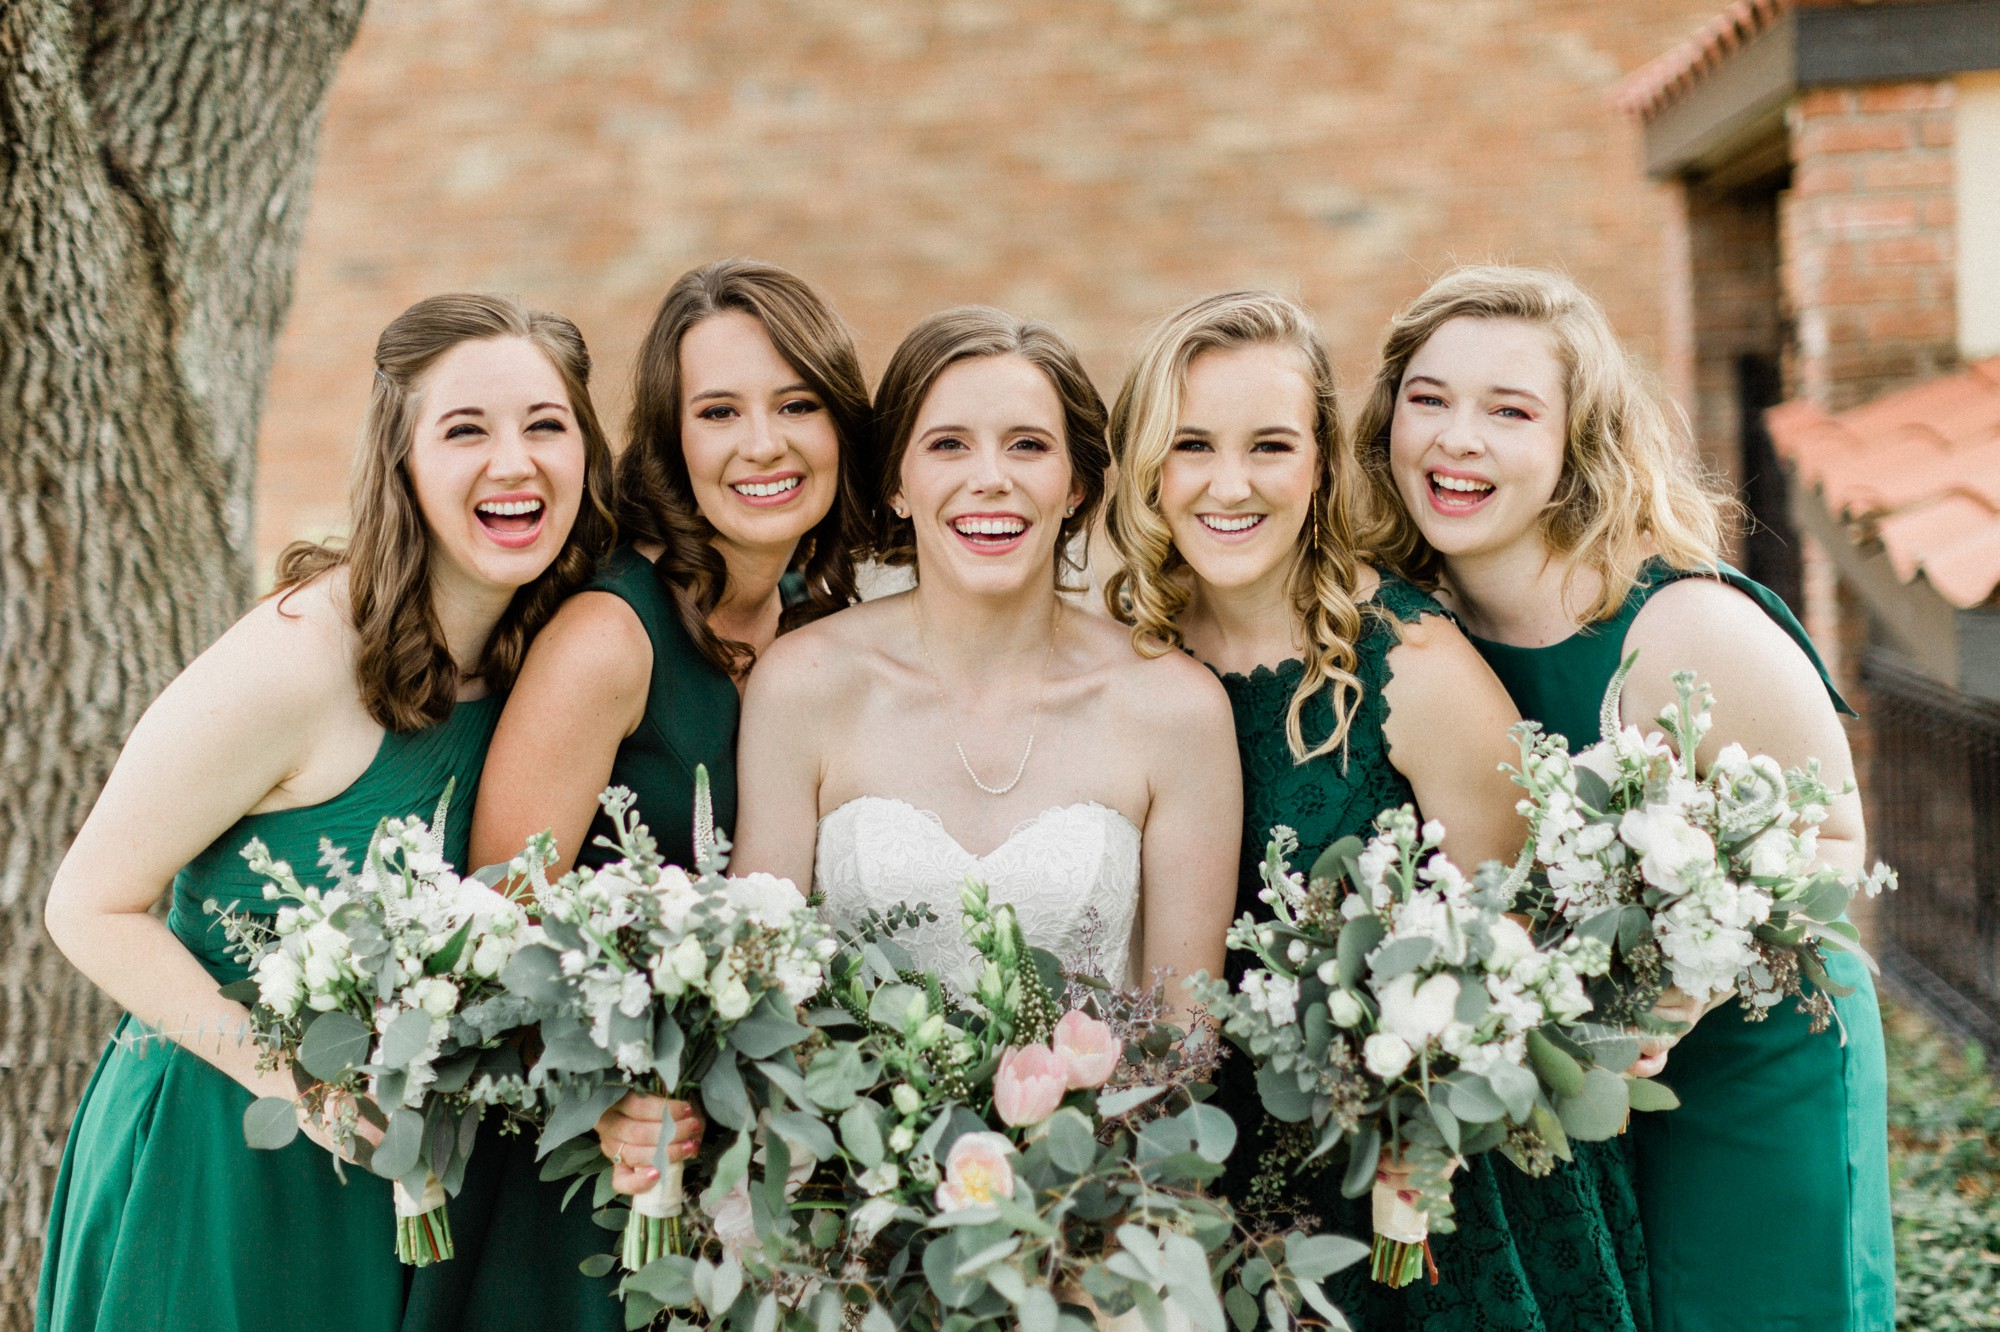 bride and bridesmaid, bhldn dress, emerald green bridesmaid, poison ivy floral design, spring wedding photo, the gallery, houston, texas, dreamy elk photography and design